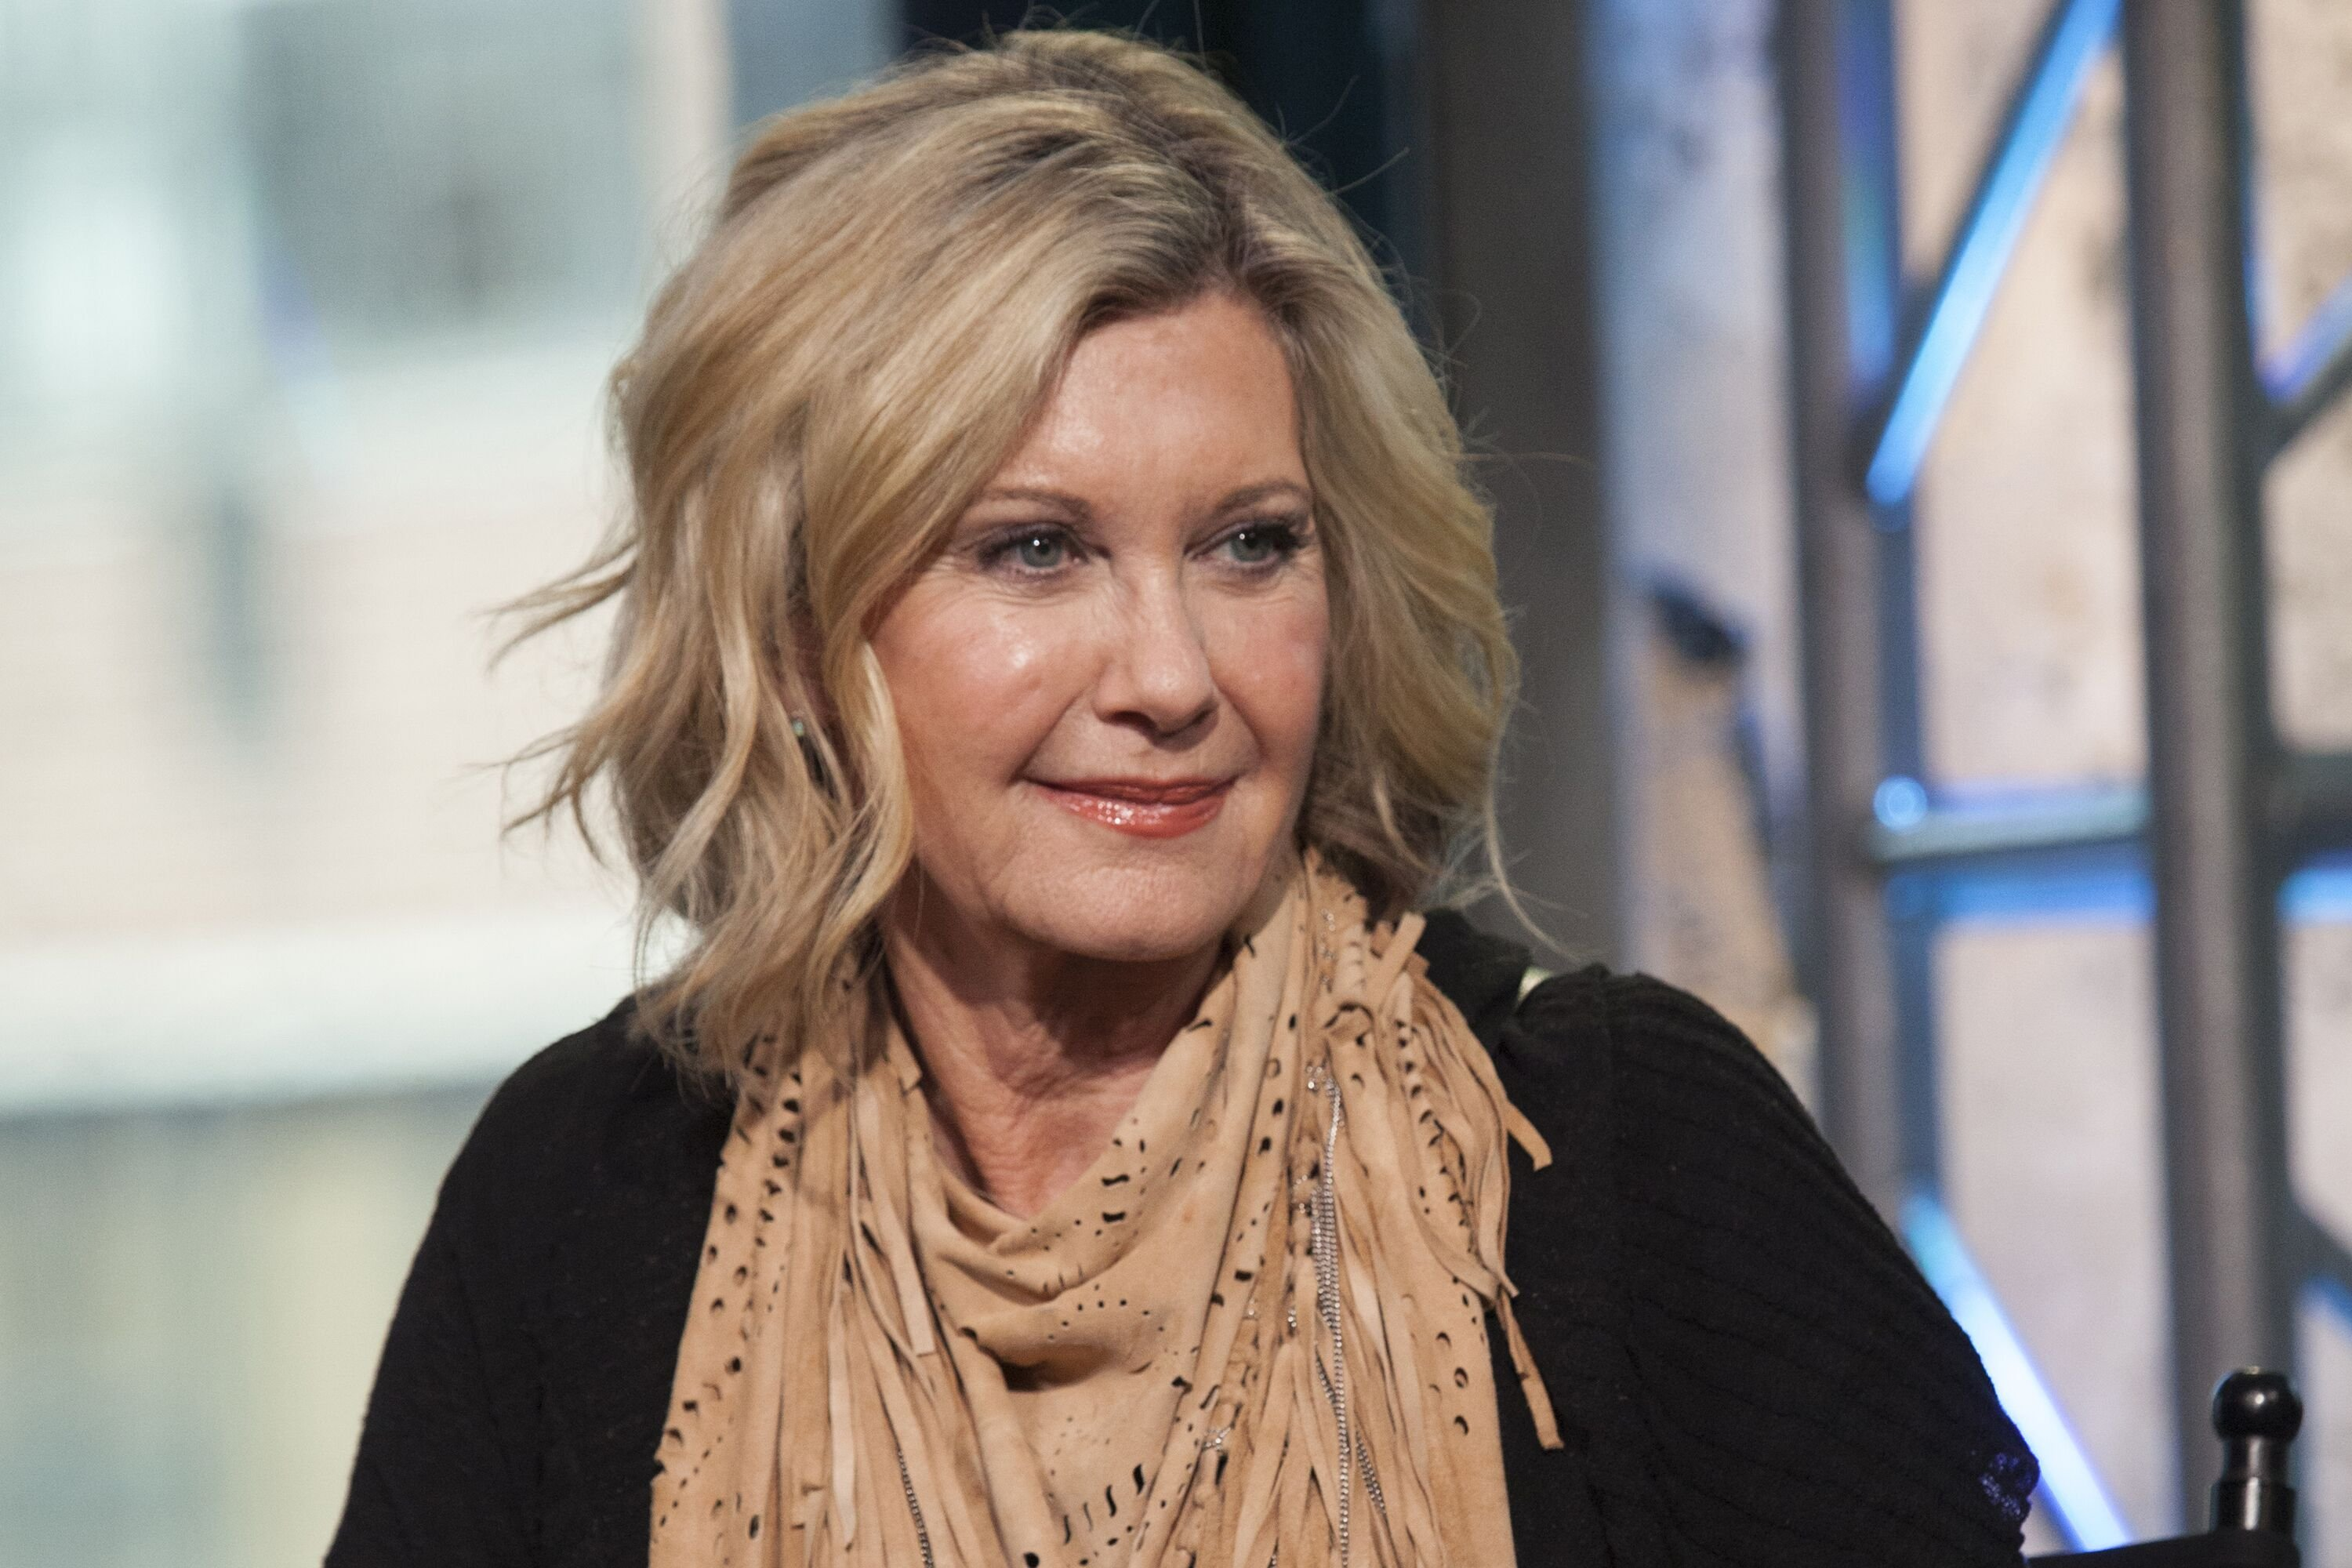 """Olivia Newton-John attends The Build Series Presents Olivia Newton-John, Amy Sky And Beth Nielsen Chapman Discussing The New Project """"LIV ON"""" at AOL HQ in New York City 